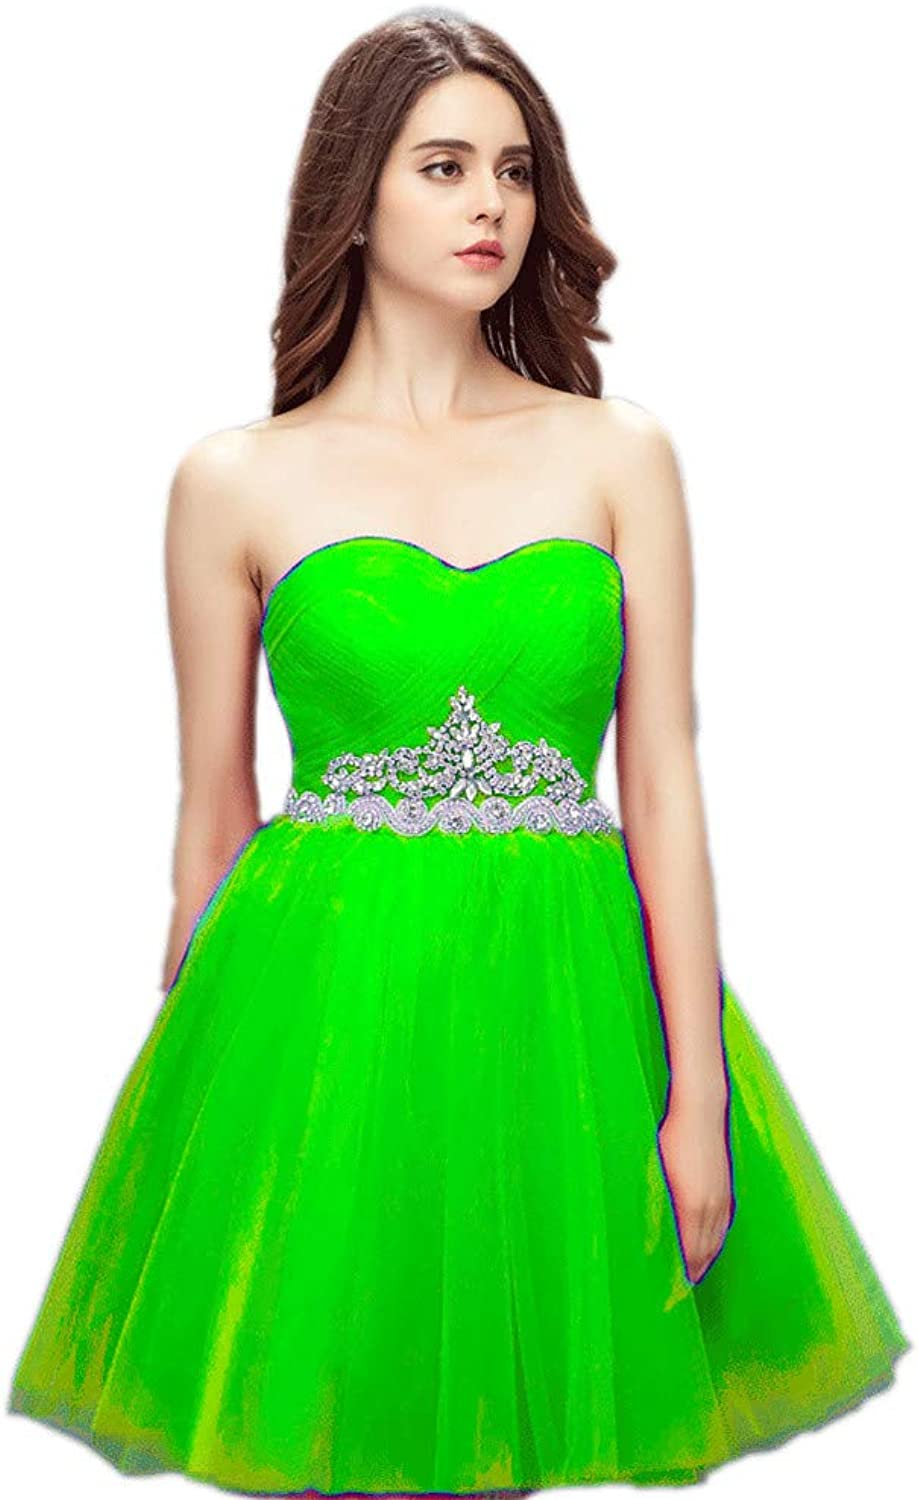 Datangep Sweetheart Tulle Prom Dresses Short Crystal Homecoming Pageant Gowns